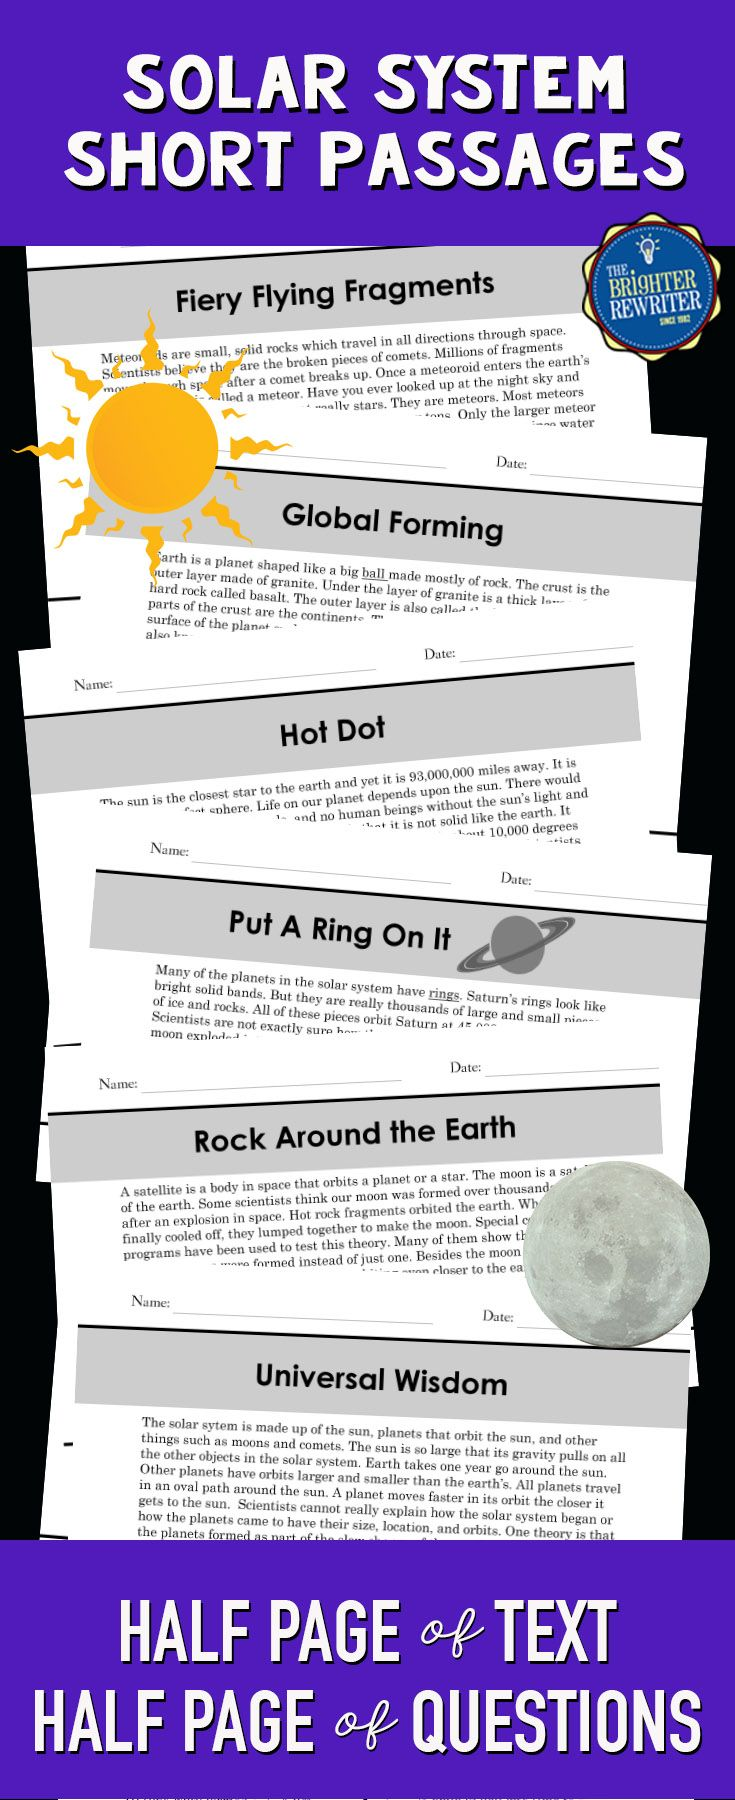 Integrate Science And Reading Using These 6 Nonfiction Mini Passages About The Solar System And Outer Space Solar System Solar Reading Comprehension Passages [ 1800 x 735 Pixel ]